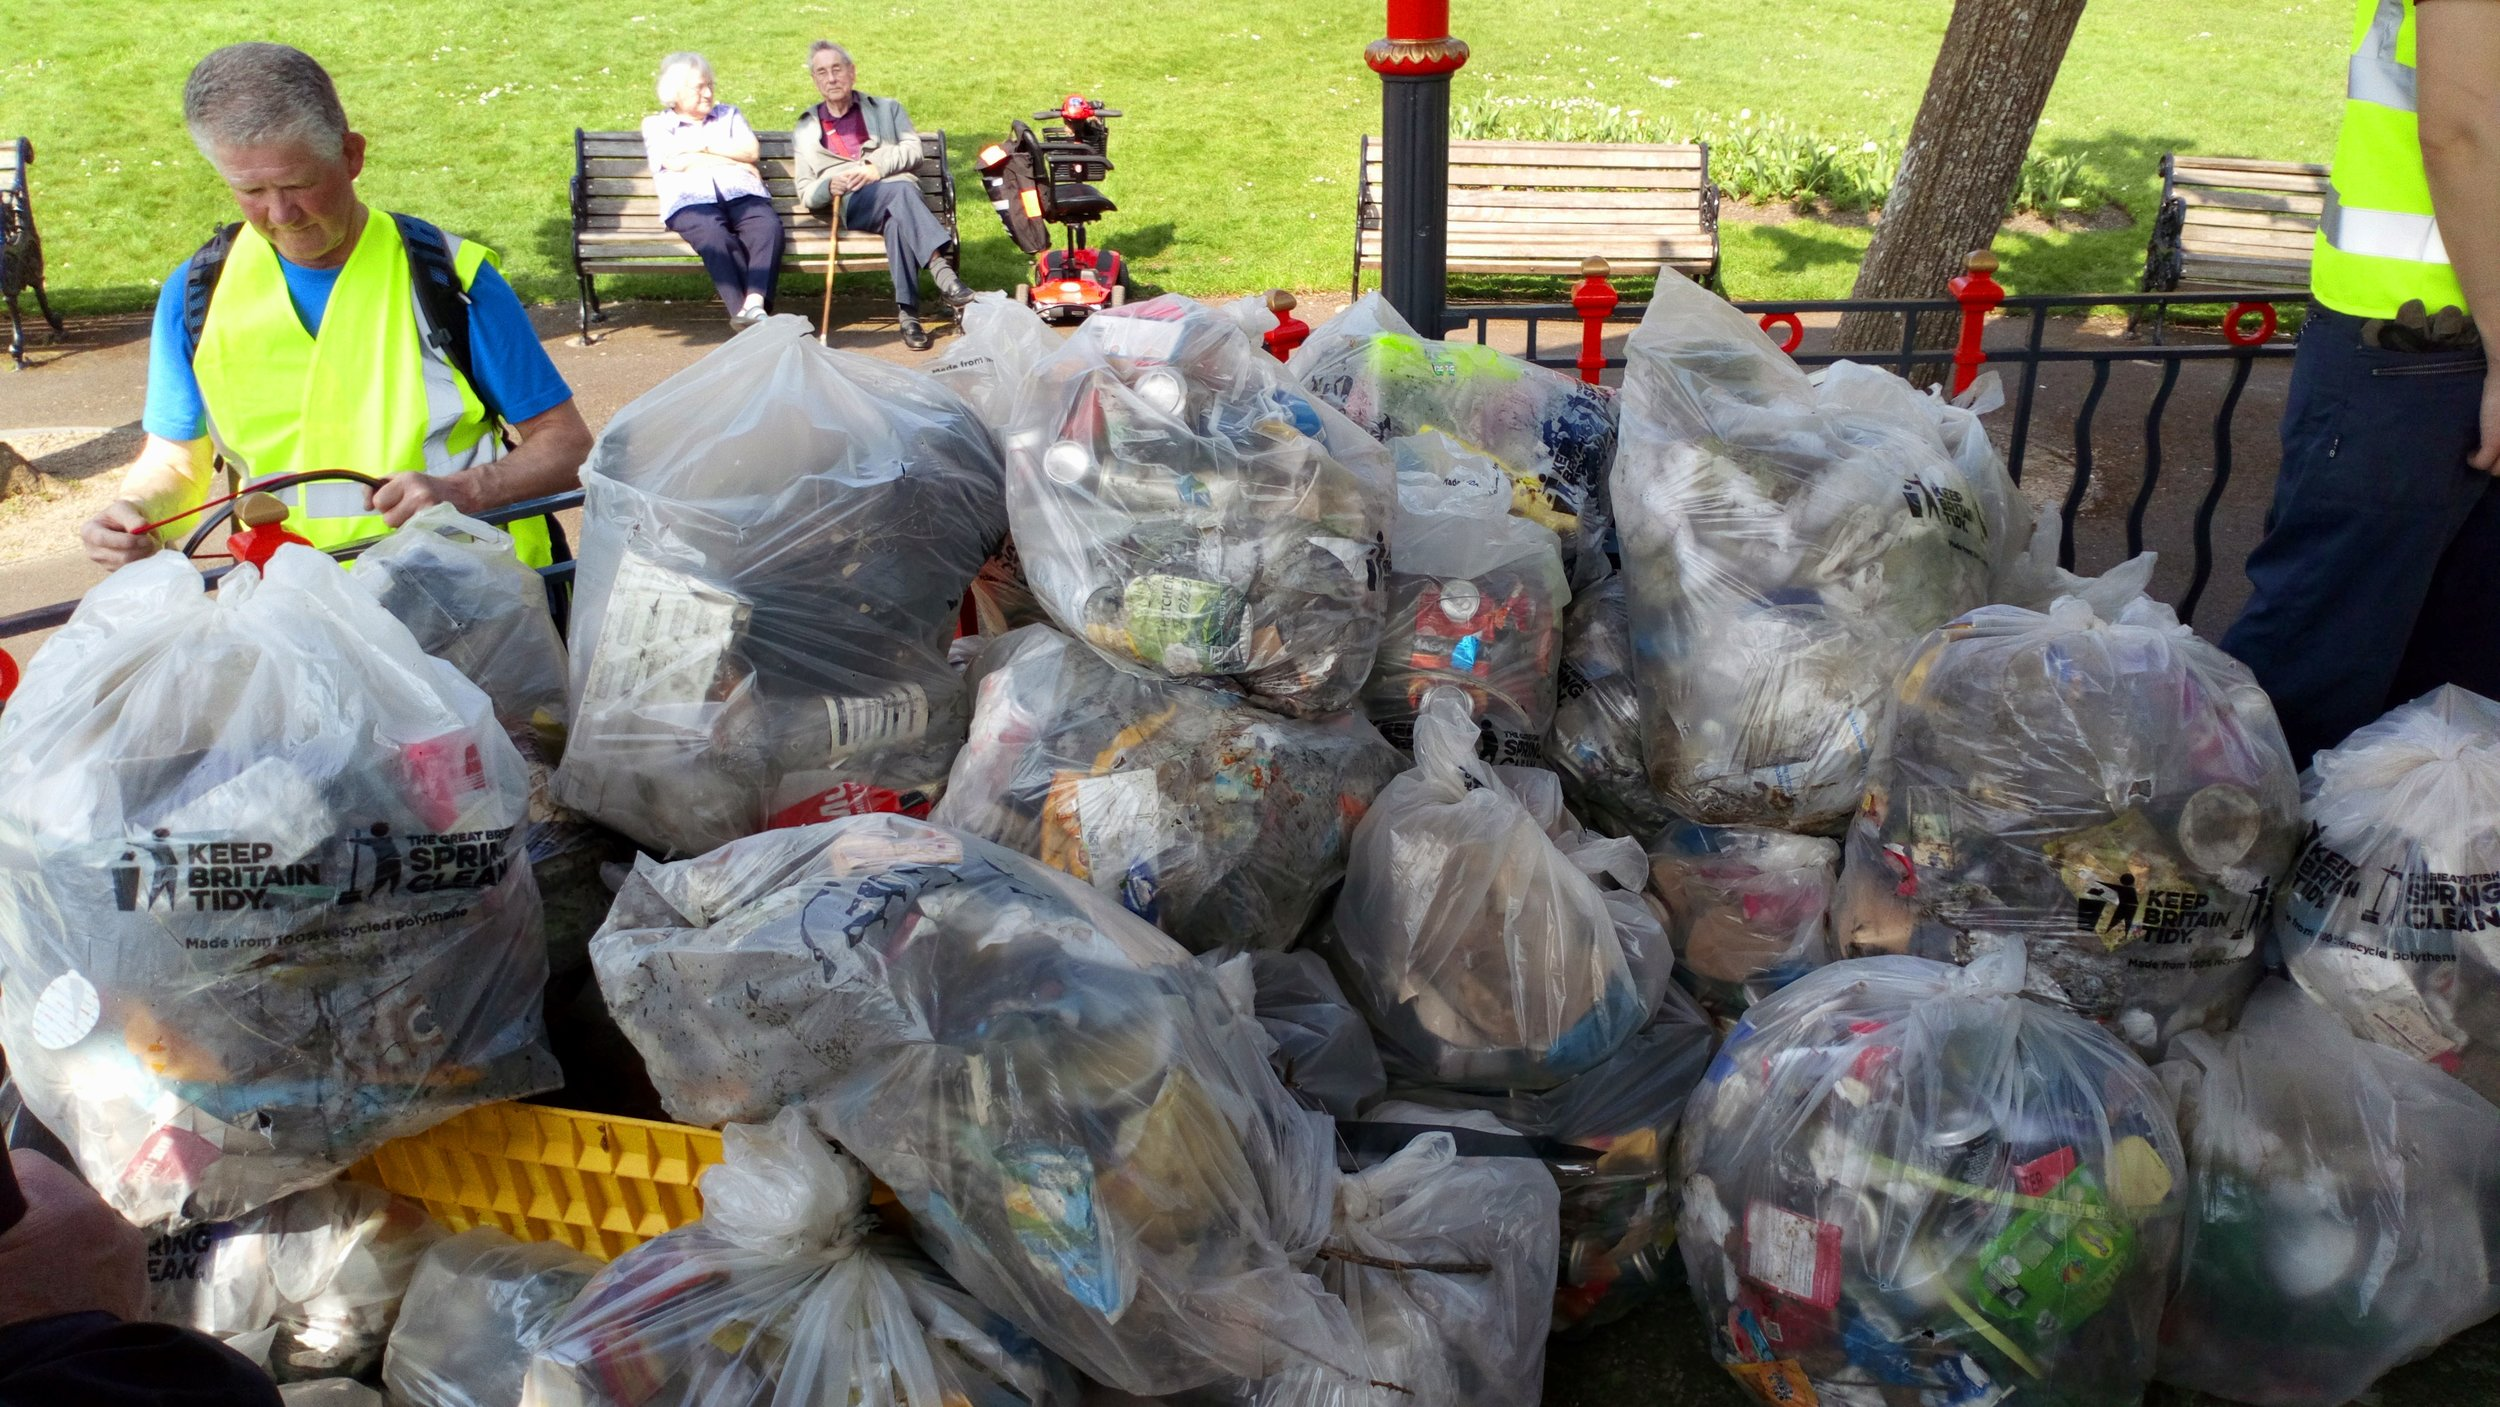 What a load of rubbish!!! Just some of the waste collected by the Plastic Free Dorchester on Saturday.